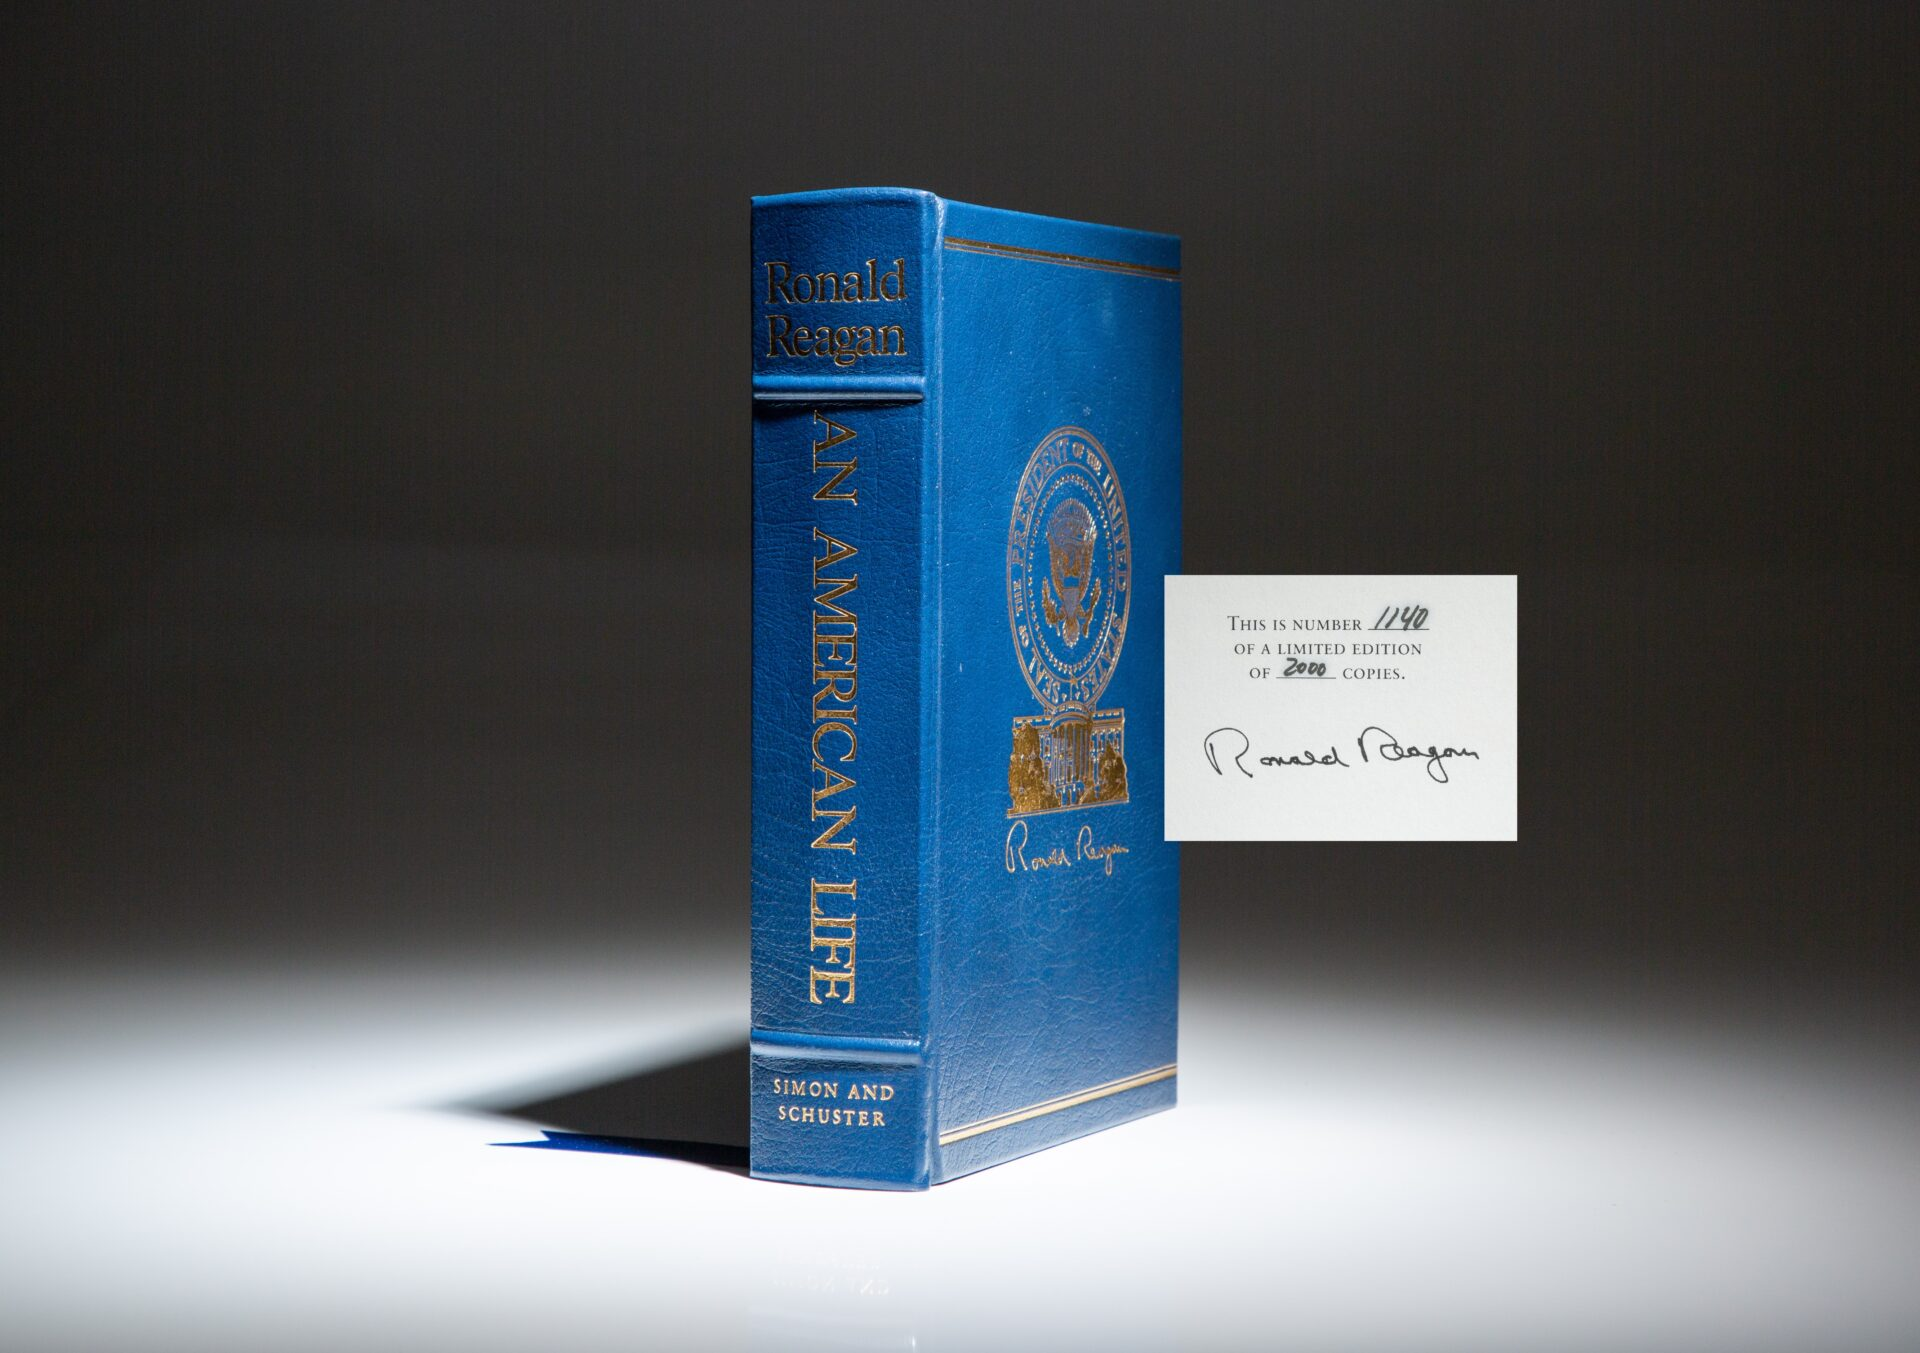 Signed limited edition of An American Life by President Ronald Reagan.